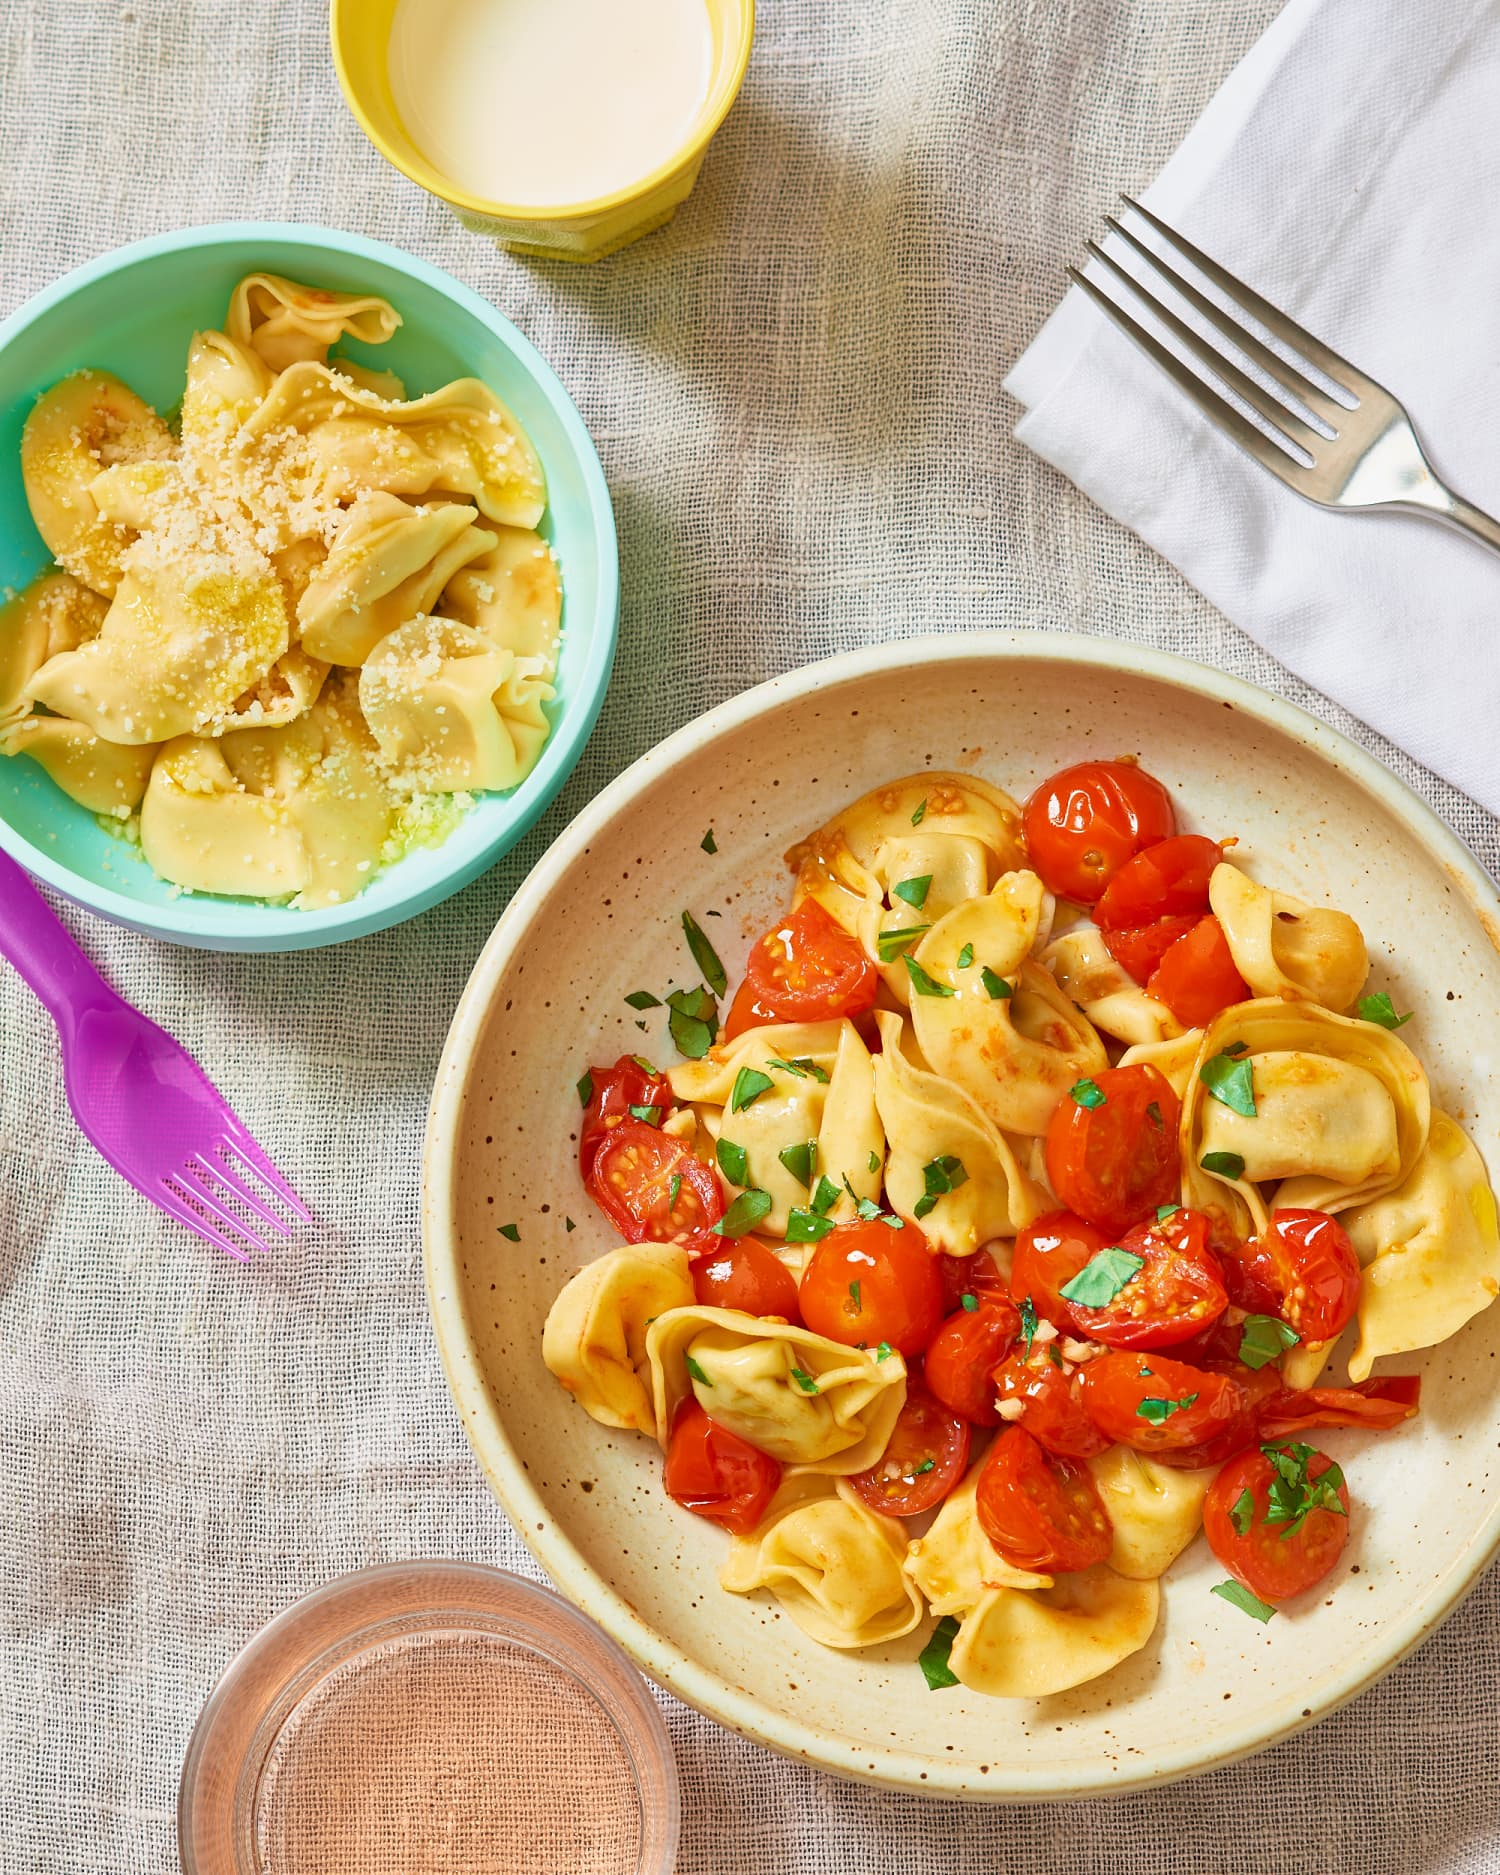 Roasted Tomatoes & Tortellini Is Buttered Noodles 2.0